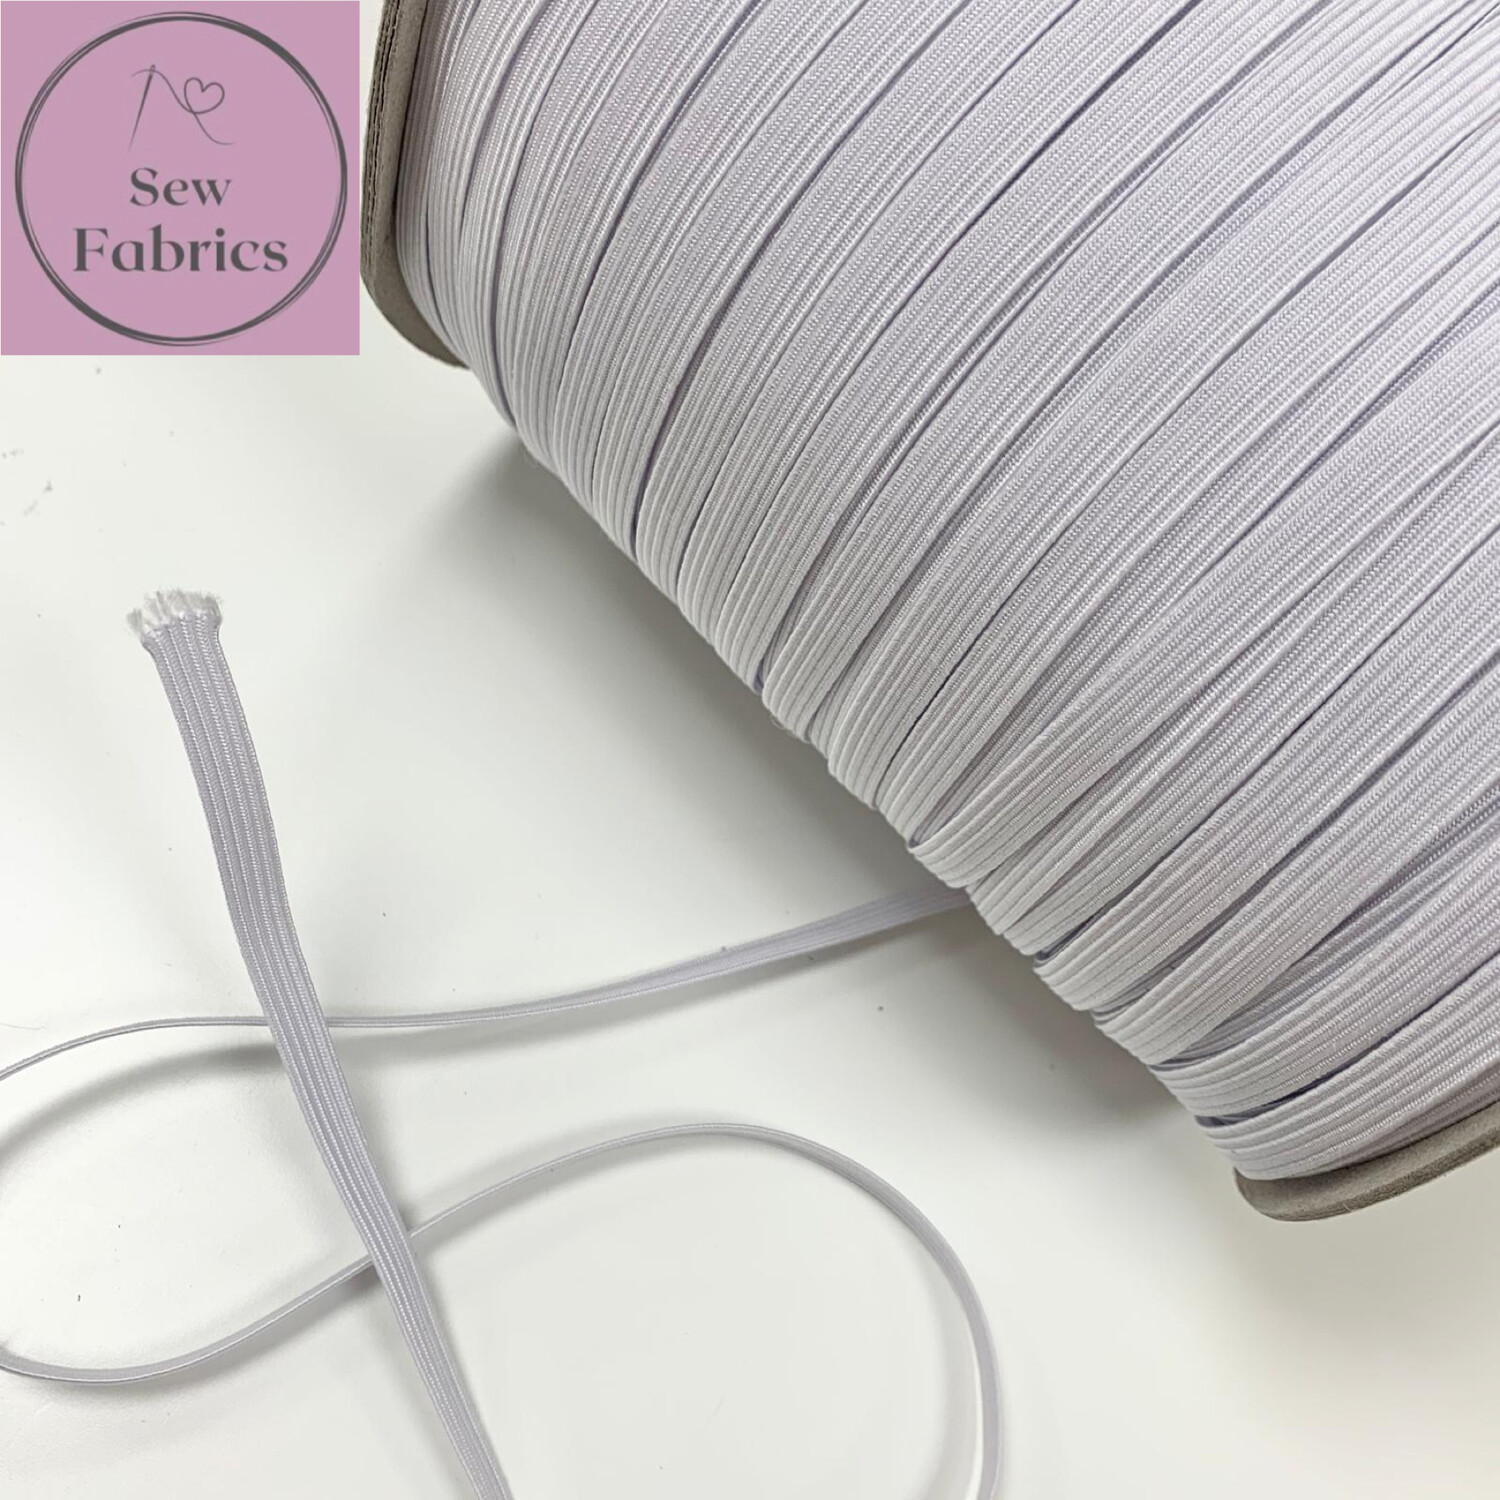 1 metre of 8mm White Insert Cord Elastic